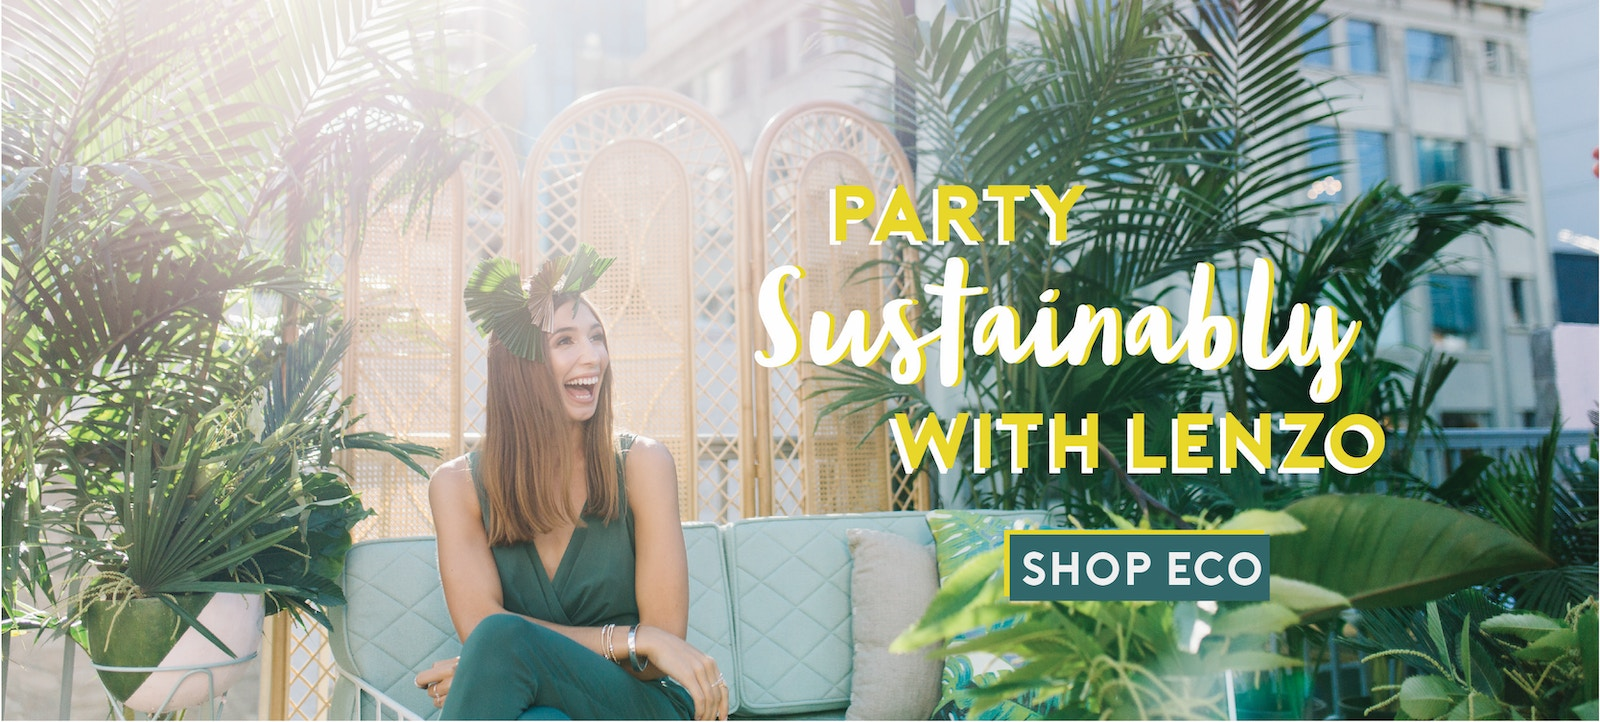 Sustainable Party Supplies